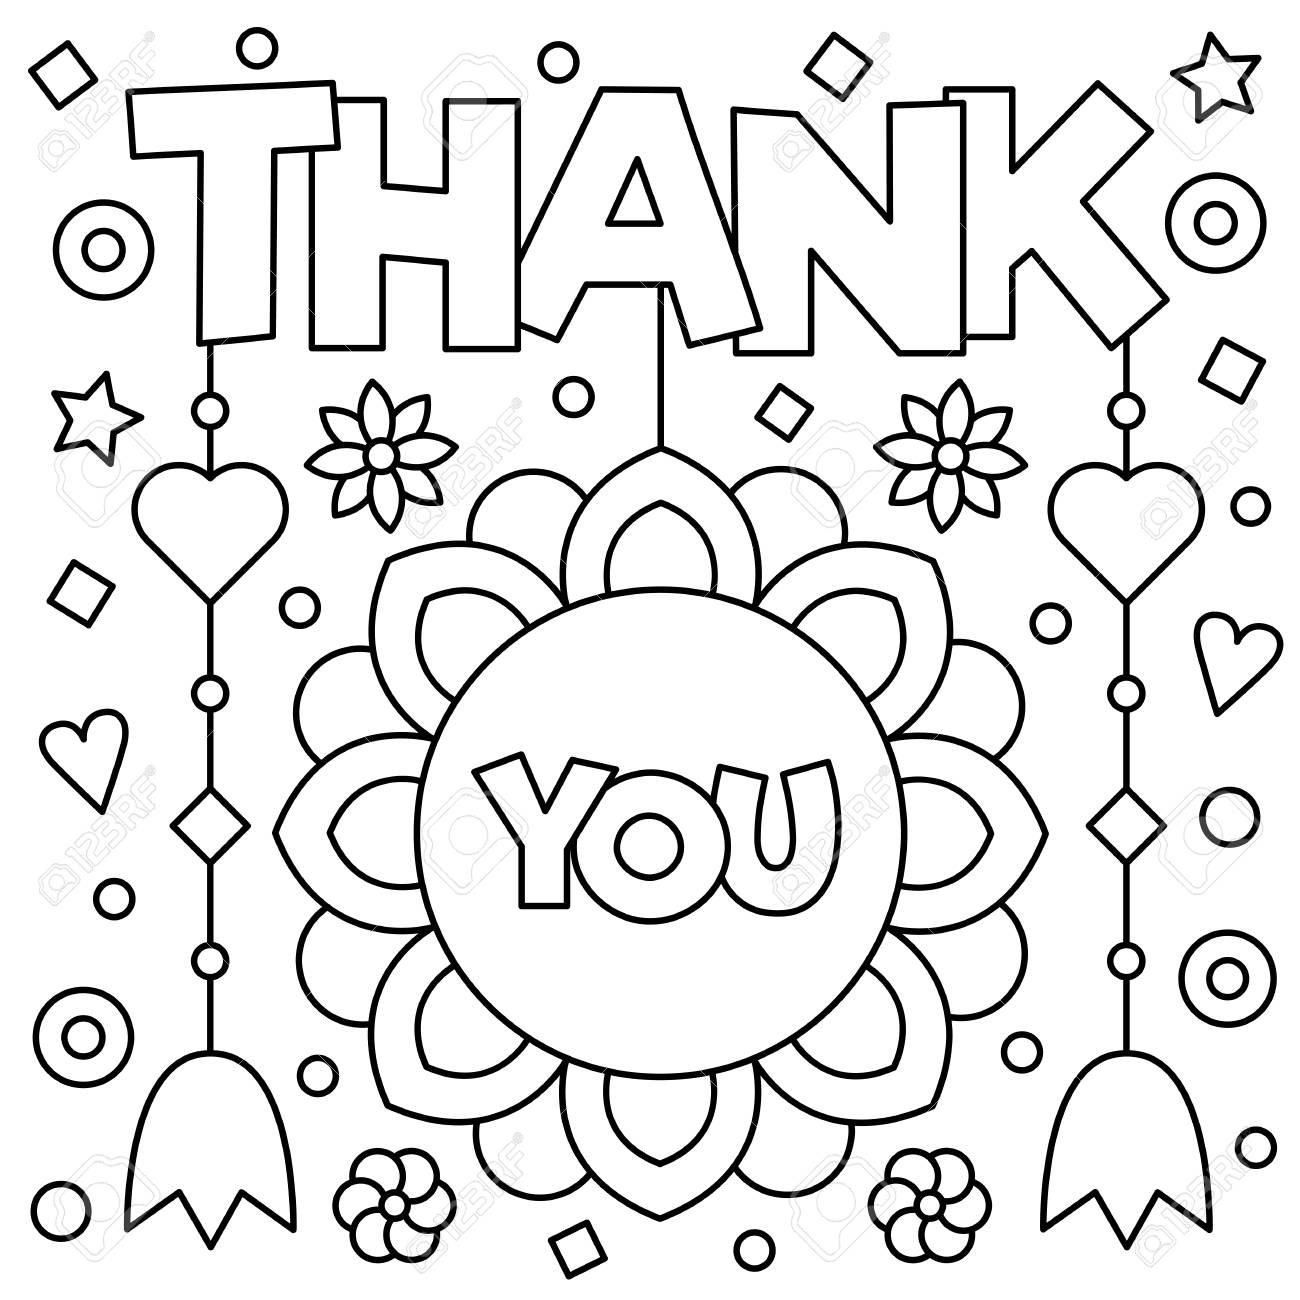 Thank You. Coloring Page. Black And White Vector Illustration. Stock ...